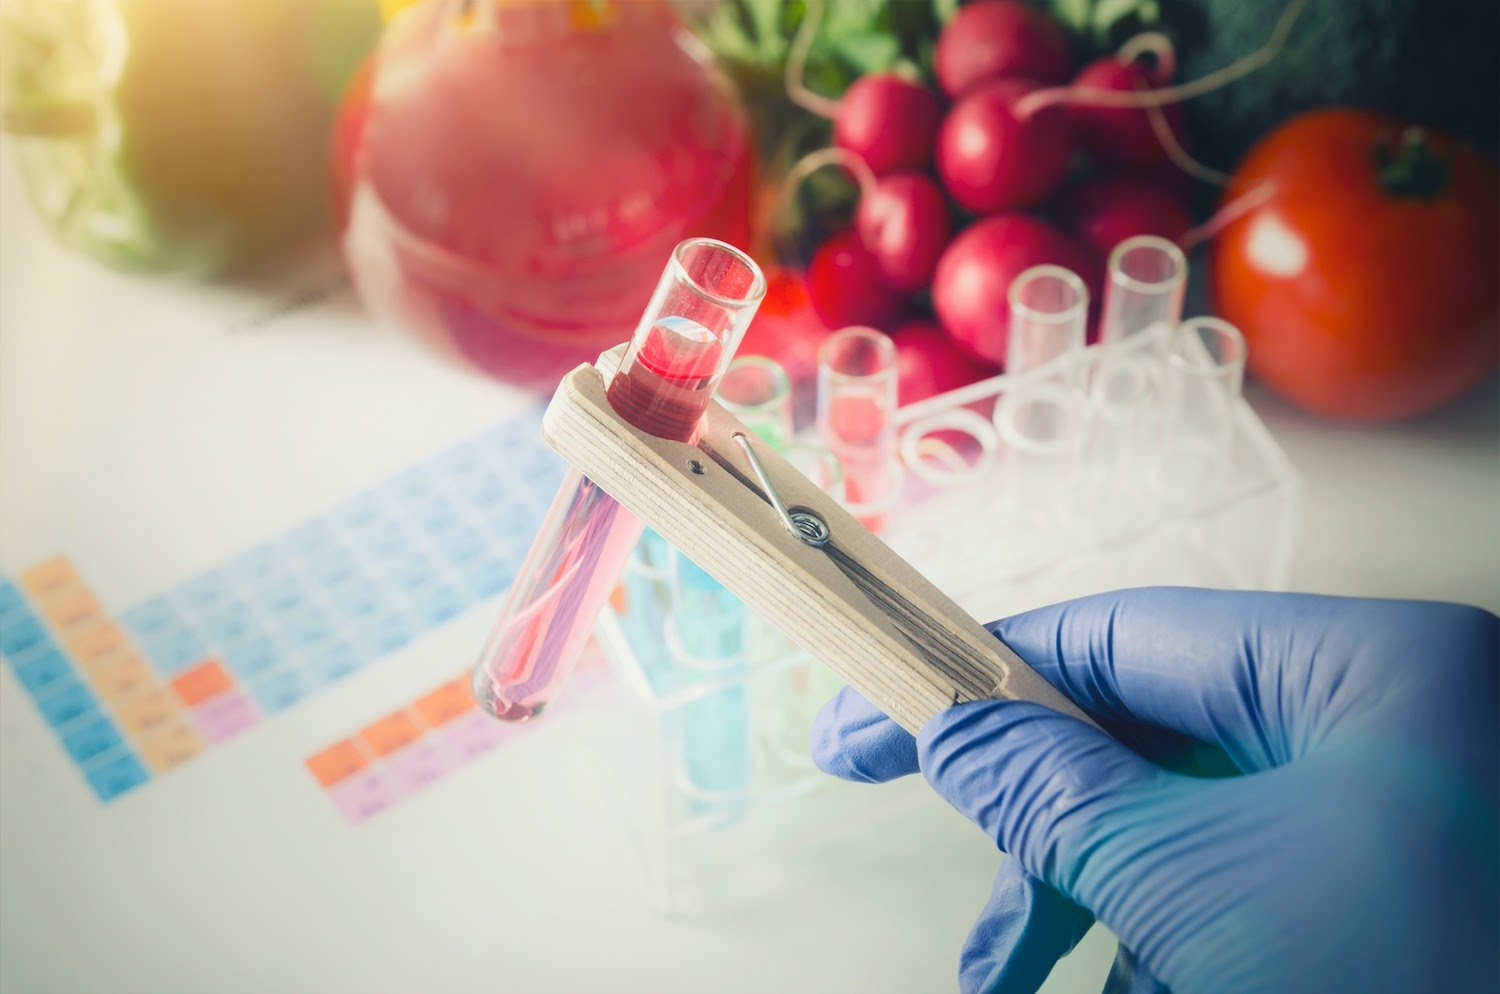 food allergy testing kit: Scientist holding a test tube in a clamp